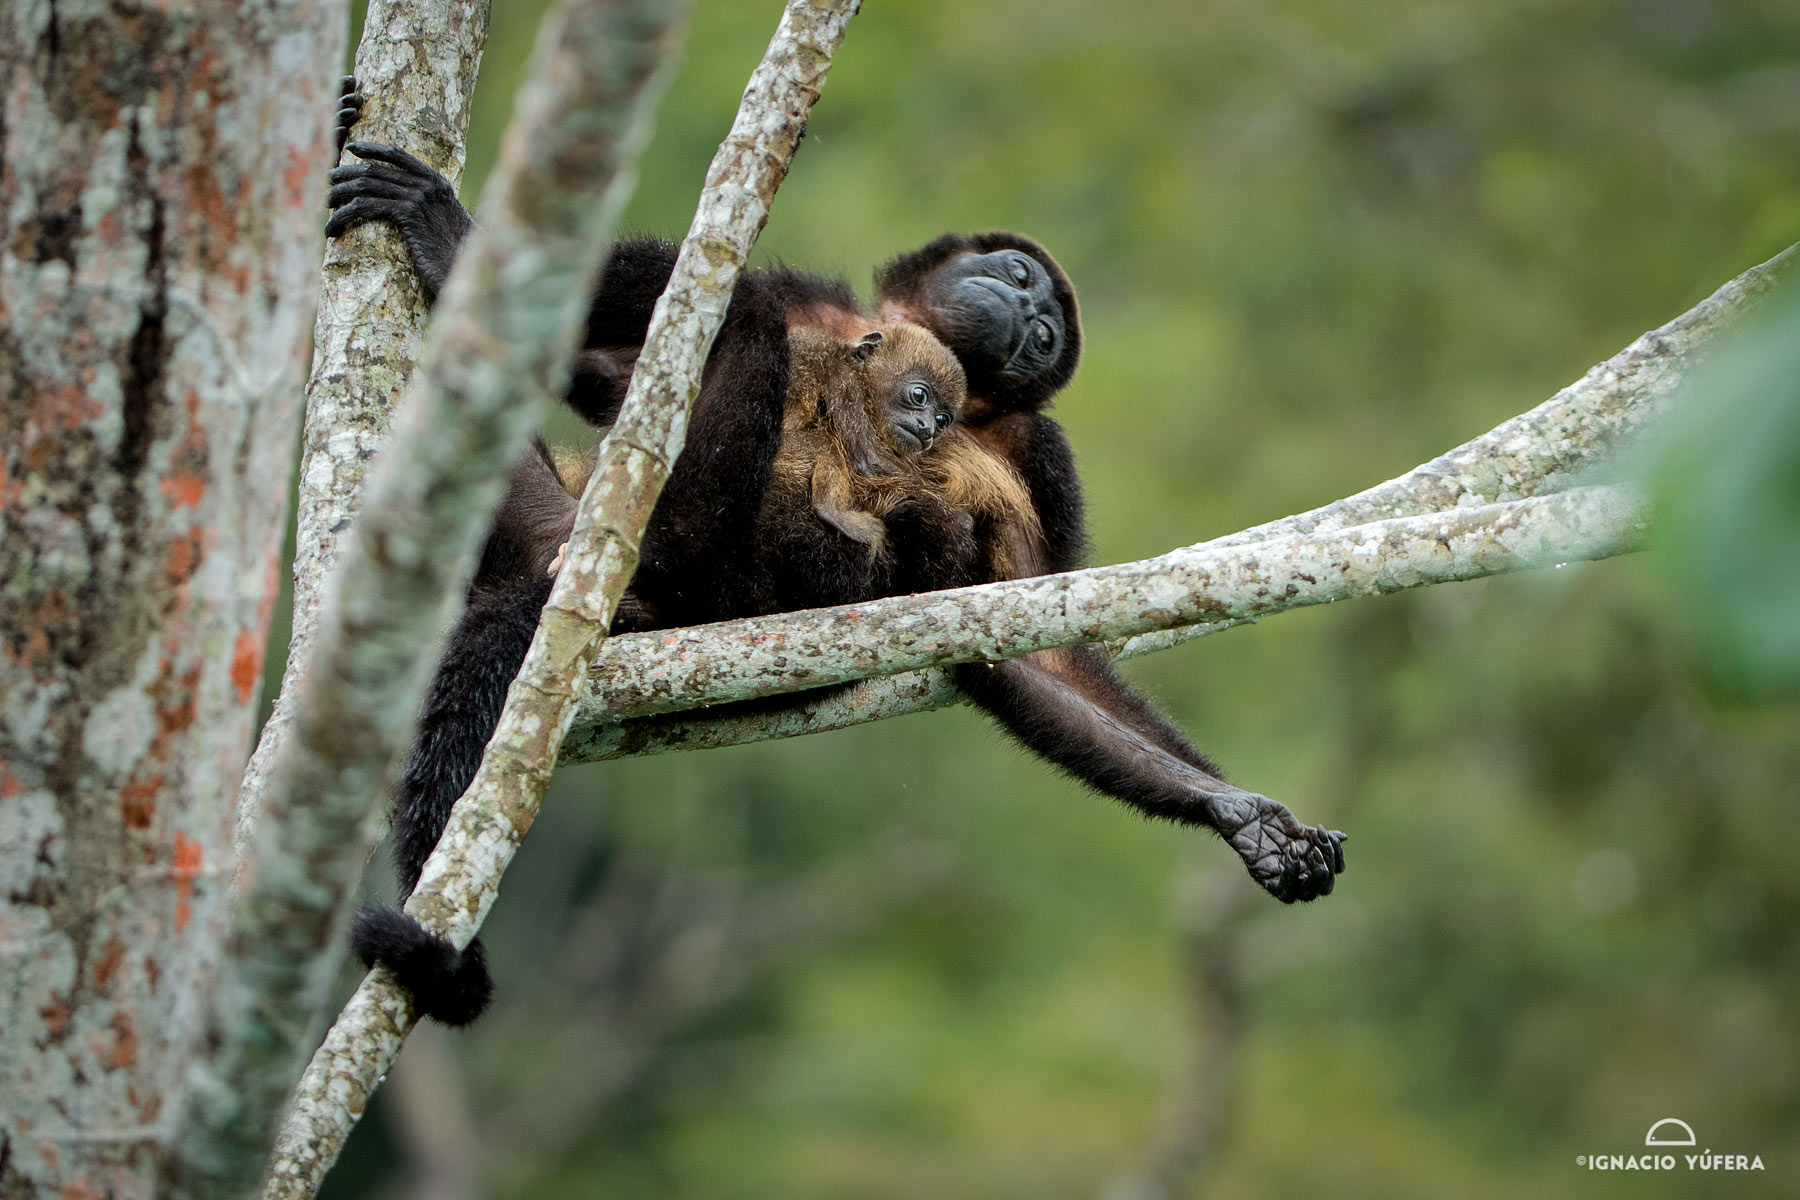 Mantled Howler Monkey (Alouatta palliata), female with infant, Gamboa, Panama